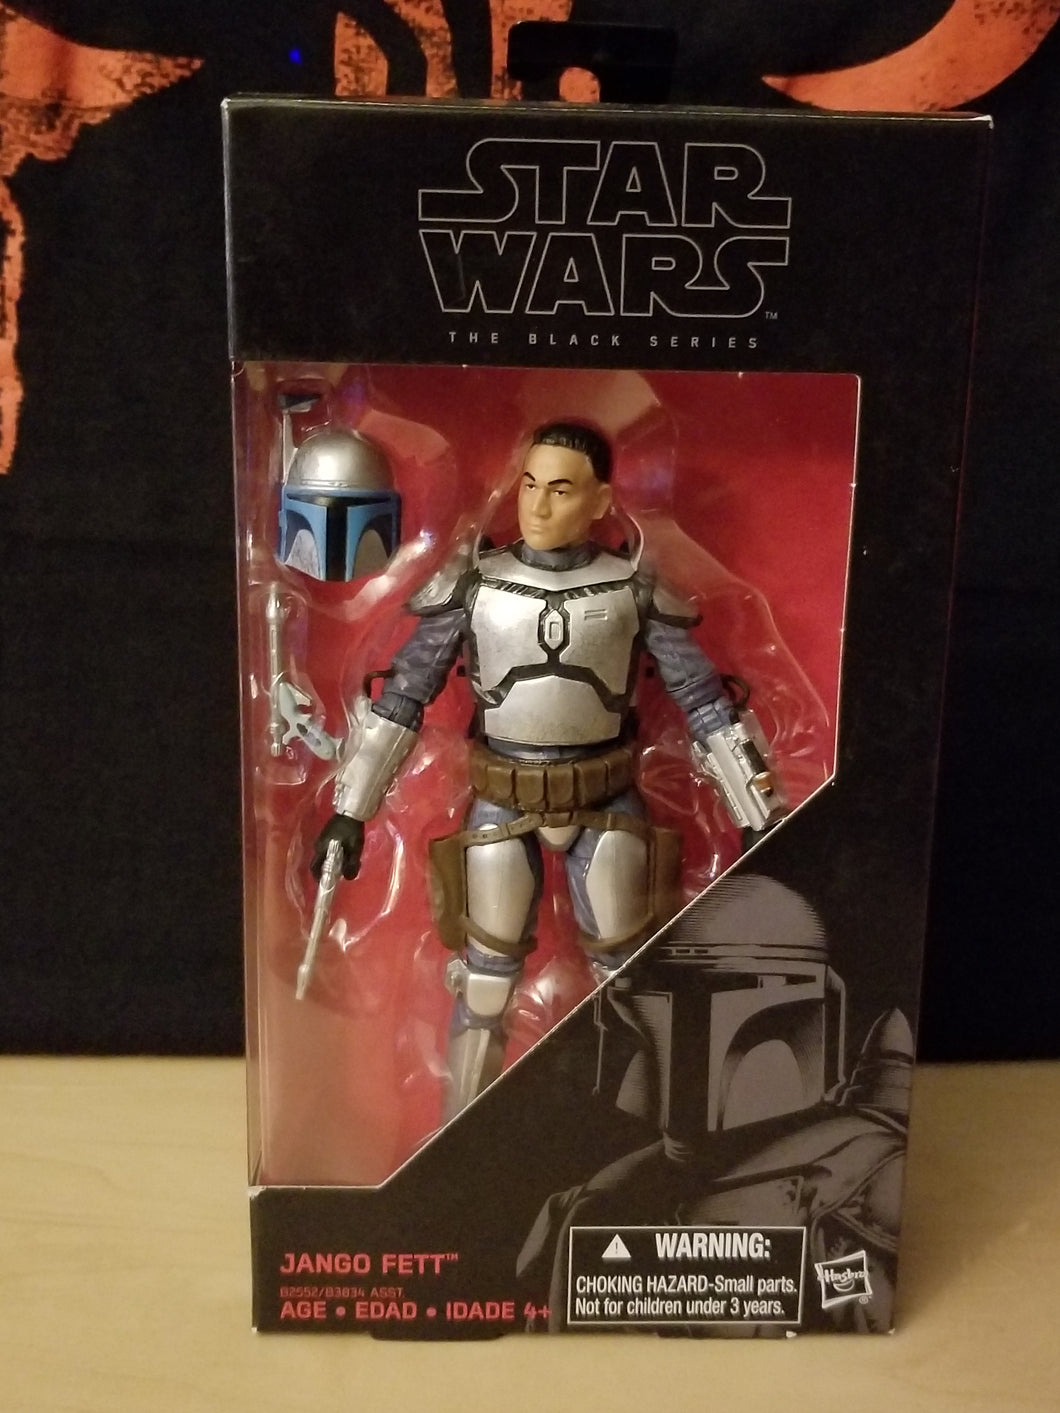 Jengo Fett #15 - The Black Series (6-inch figure)